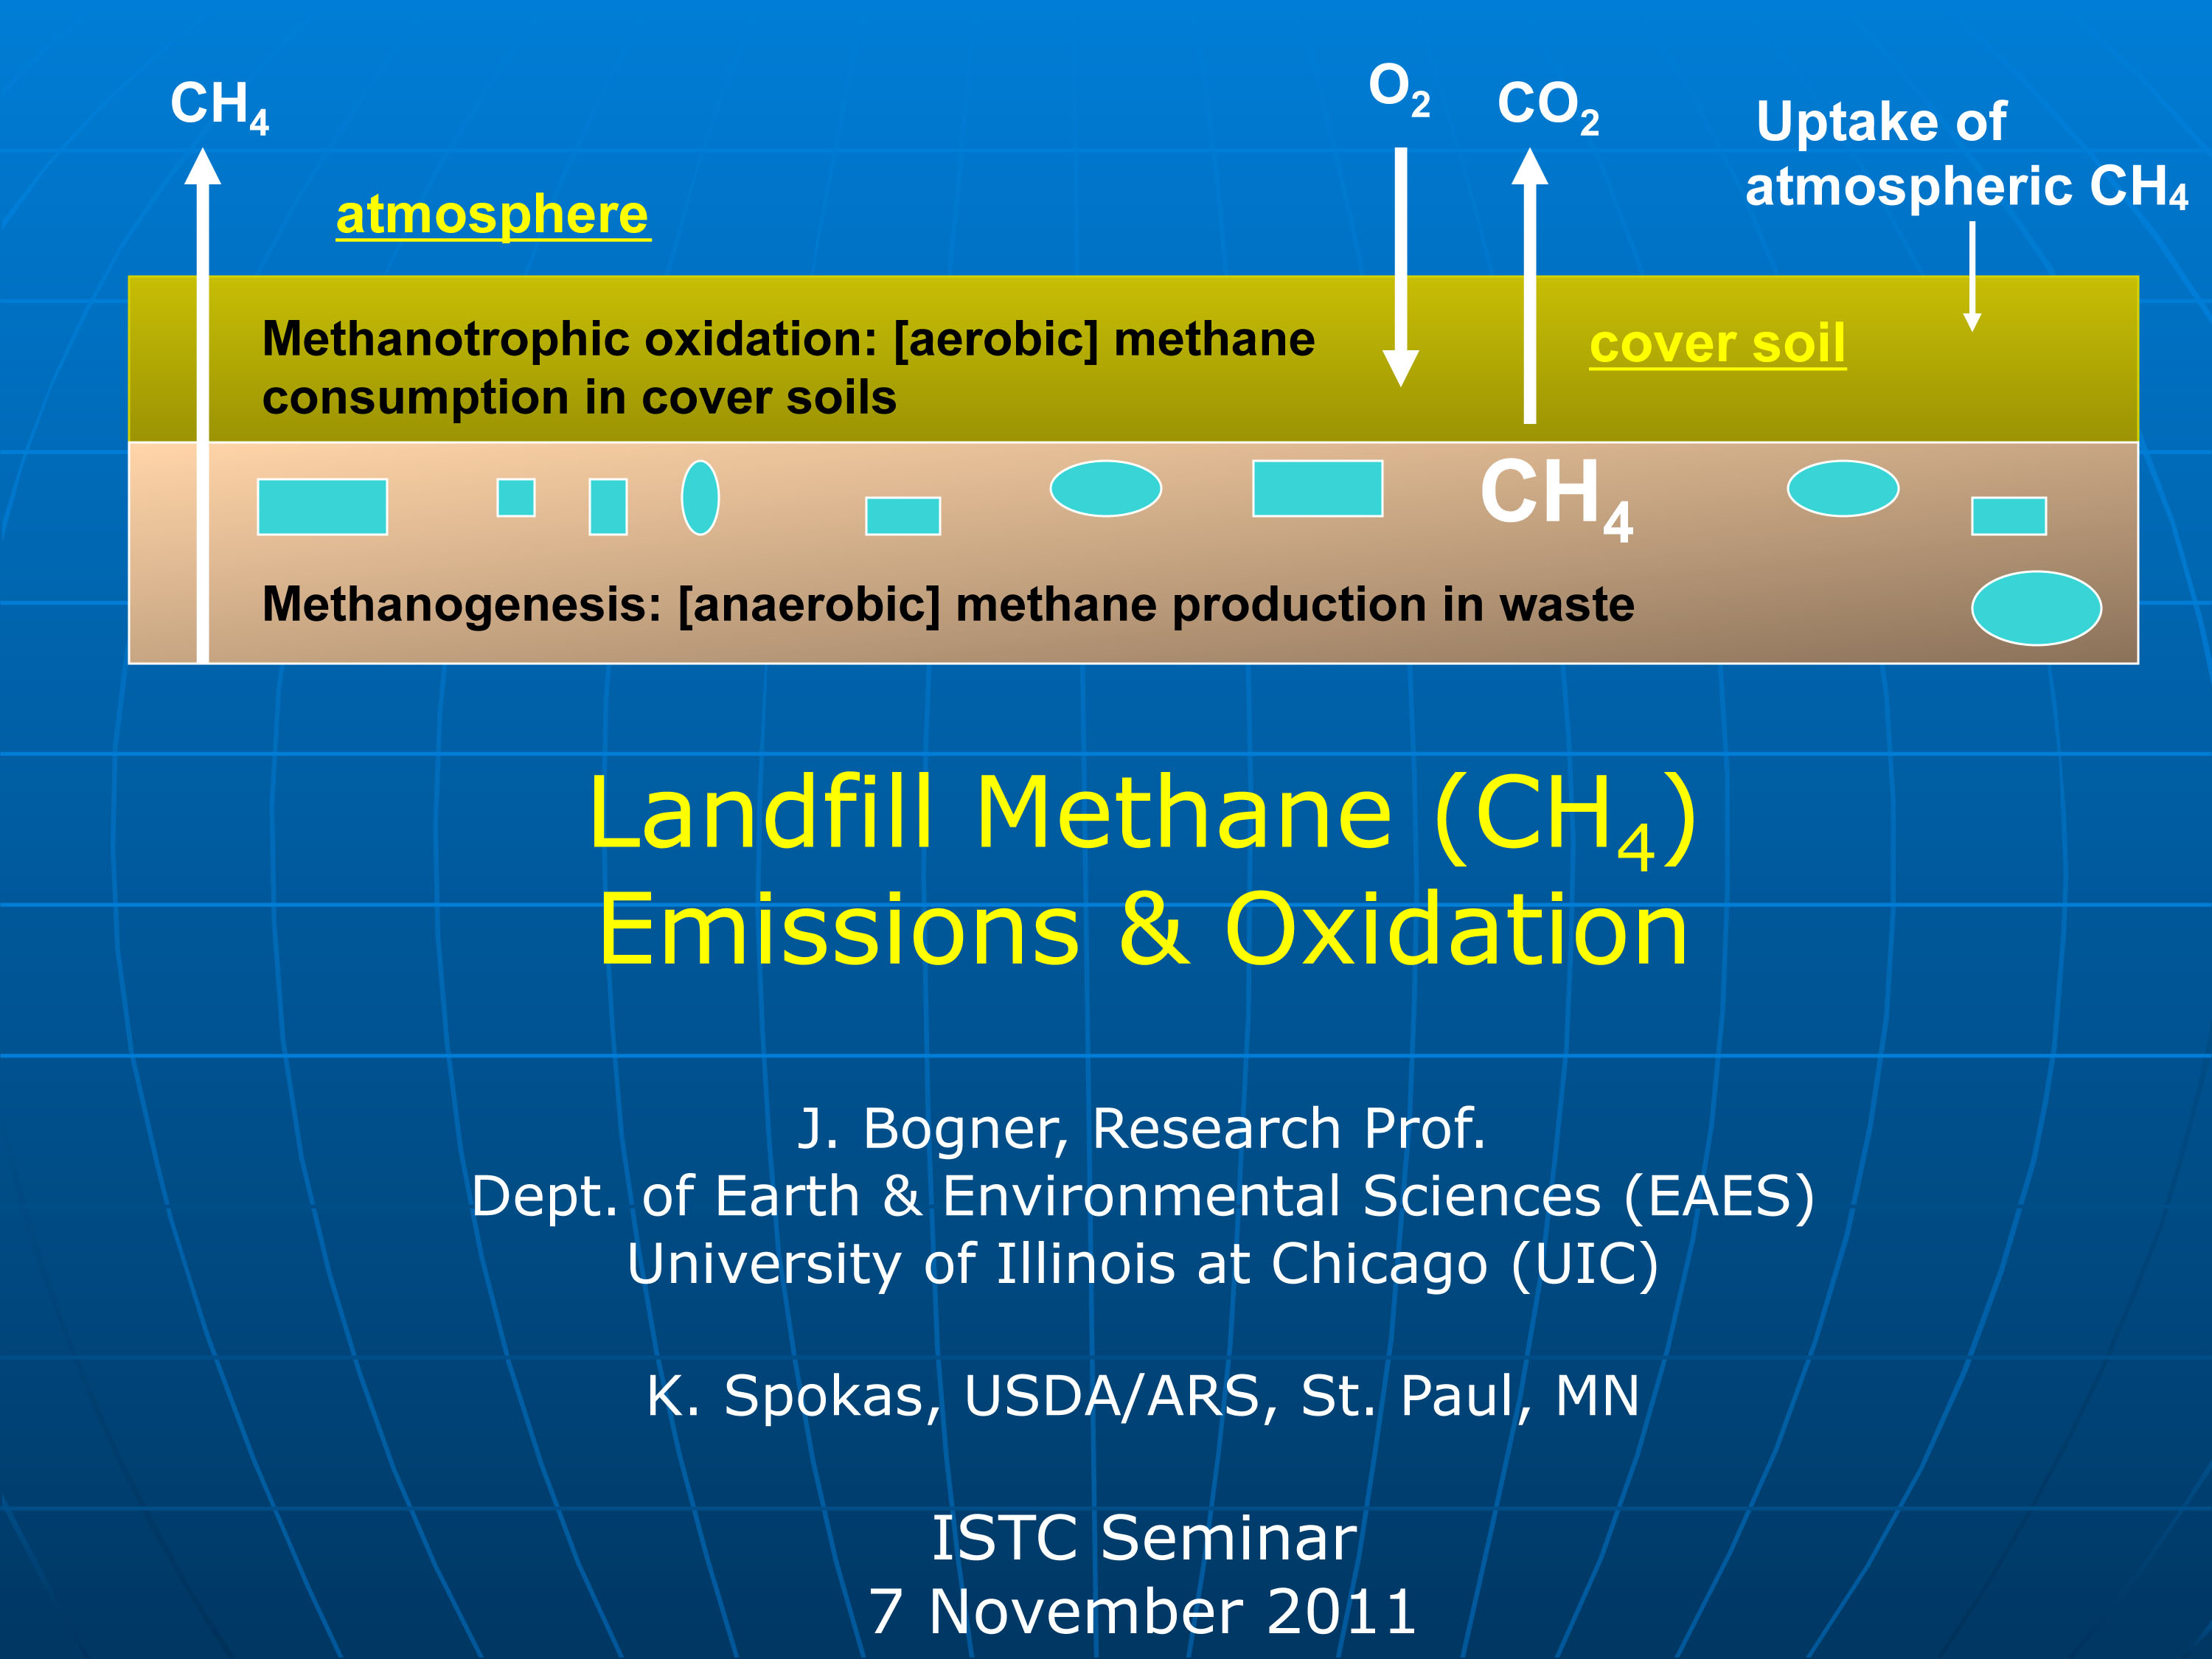 Title Slide: Landfill Methane Emissions and oxidation